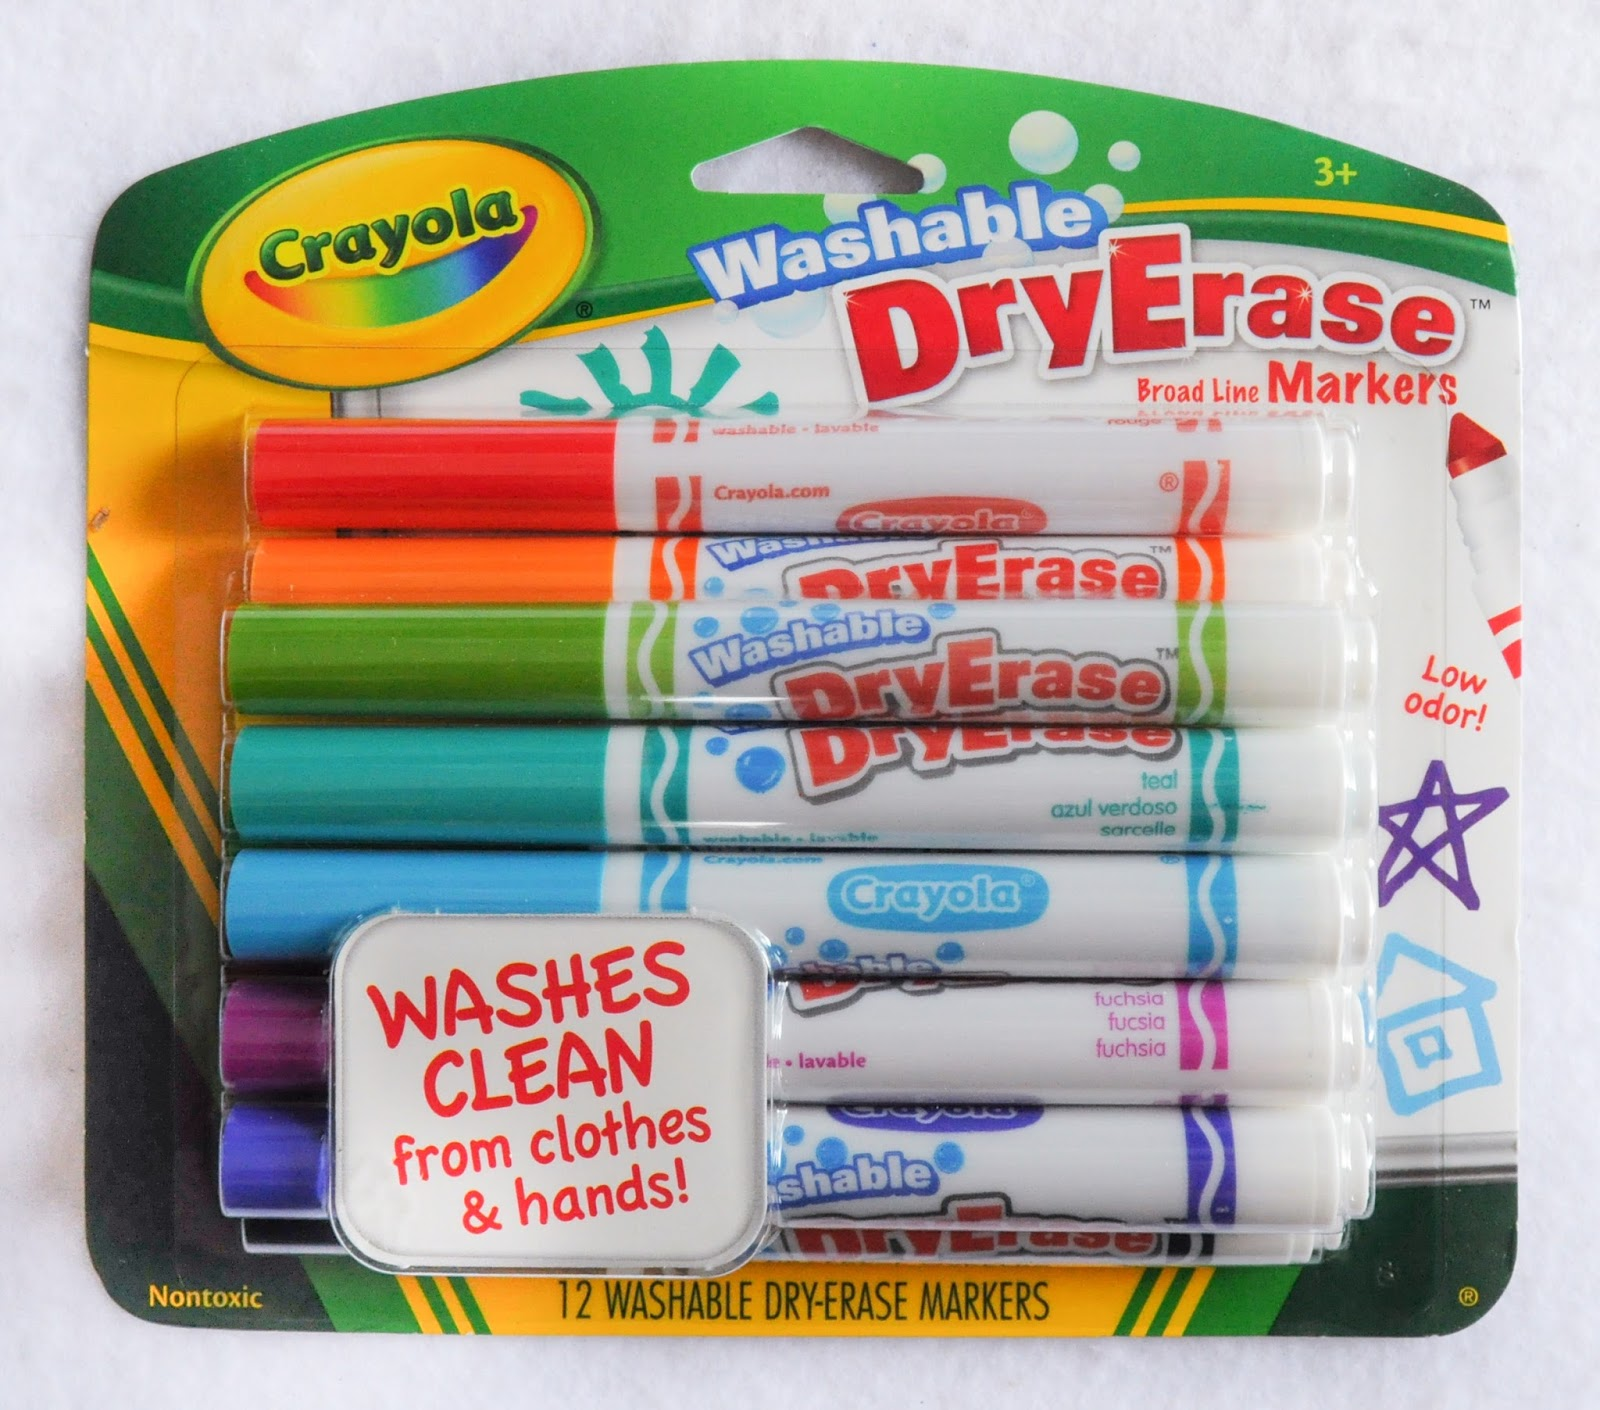 12 Count Crayola Washable DryErase Markers: What's Inside